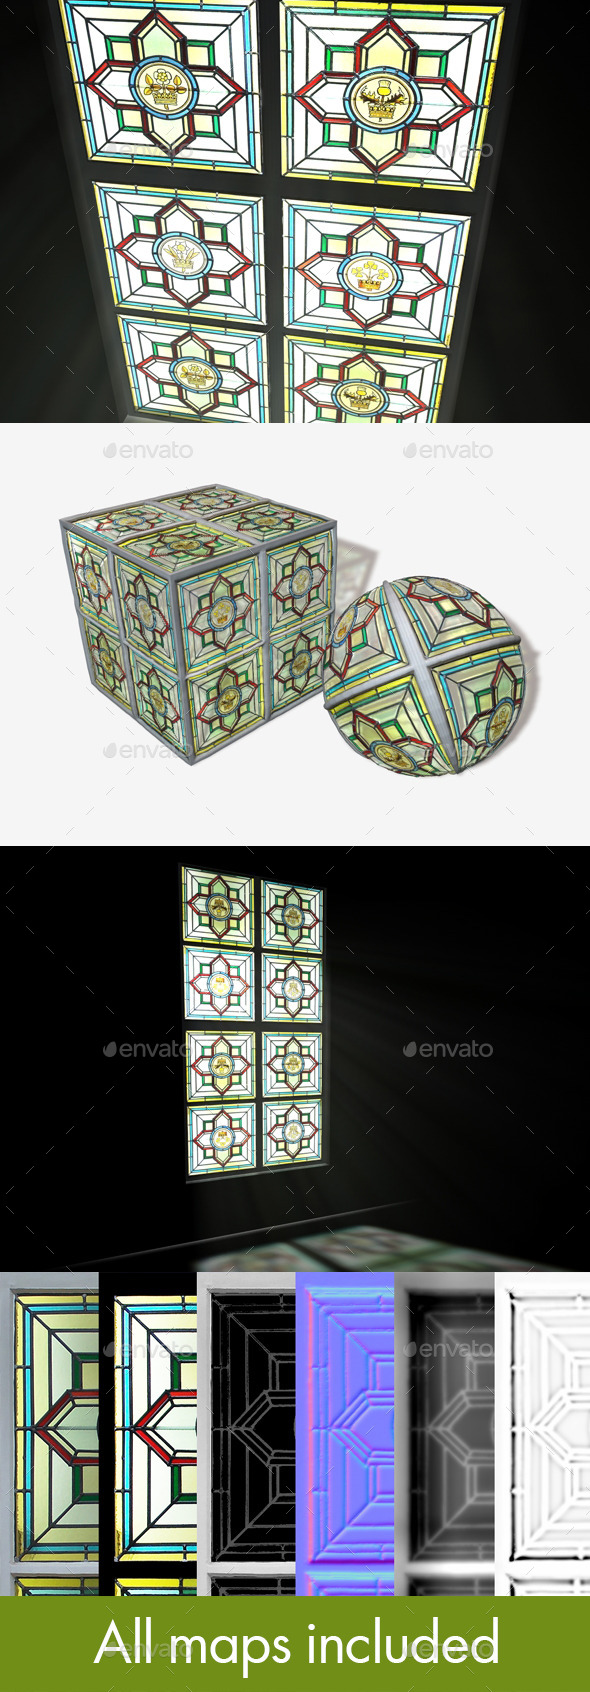 British Stained Glass Window Seamless Texture - 3DOcean Item for Sale